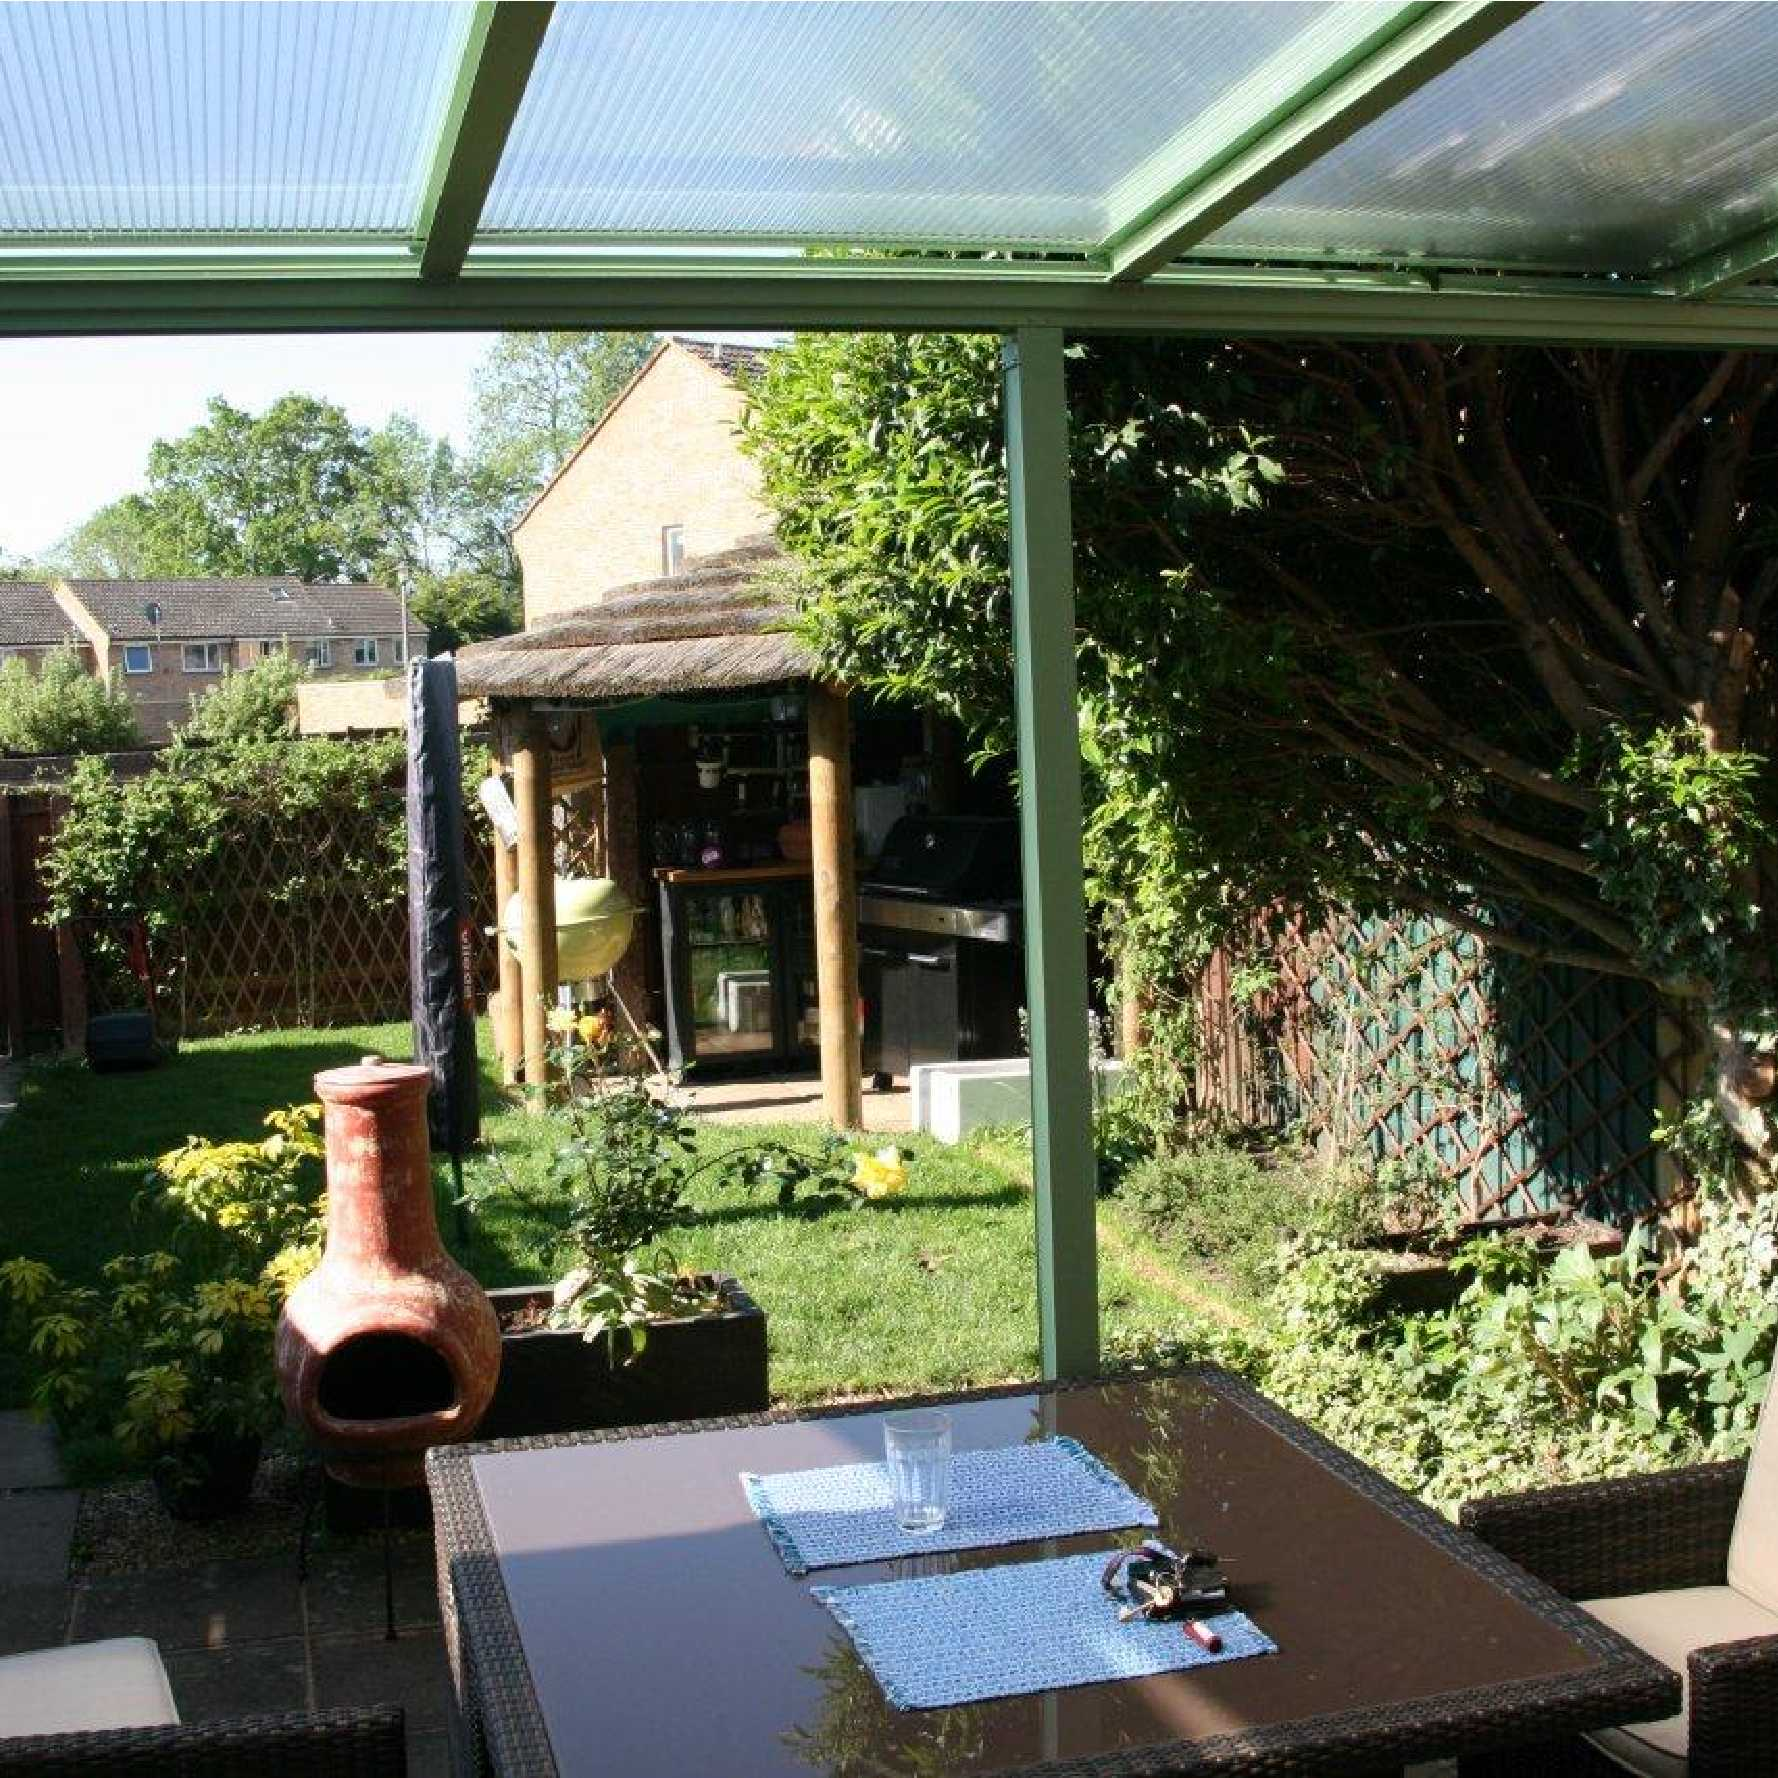 Affordable Omega Smart Lean-To Canopy with 16mm Polycarbonate Glazing - 9.9m (W) x 4.0m (P), (5) Supporting Posts